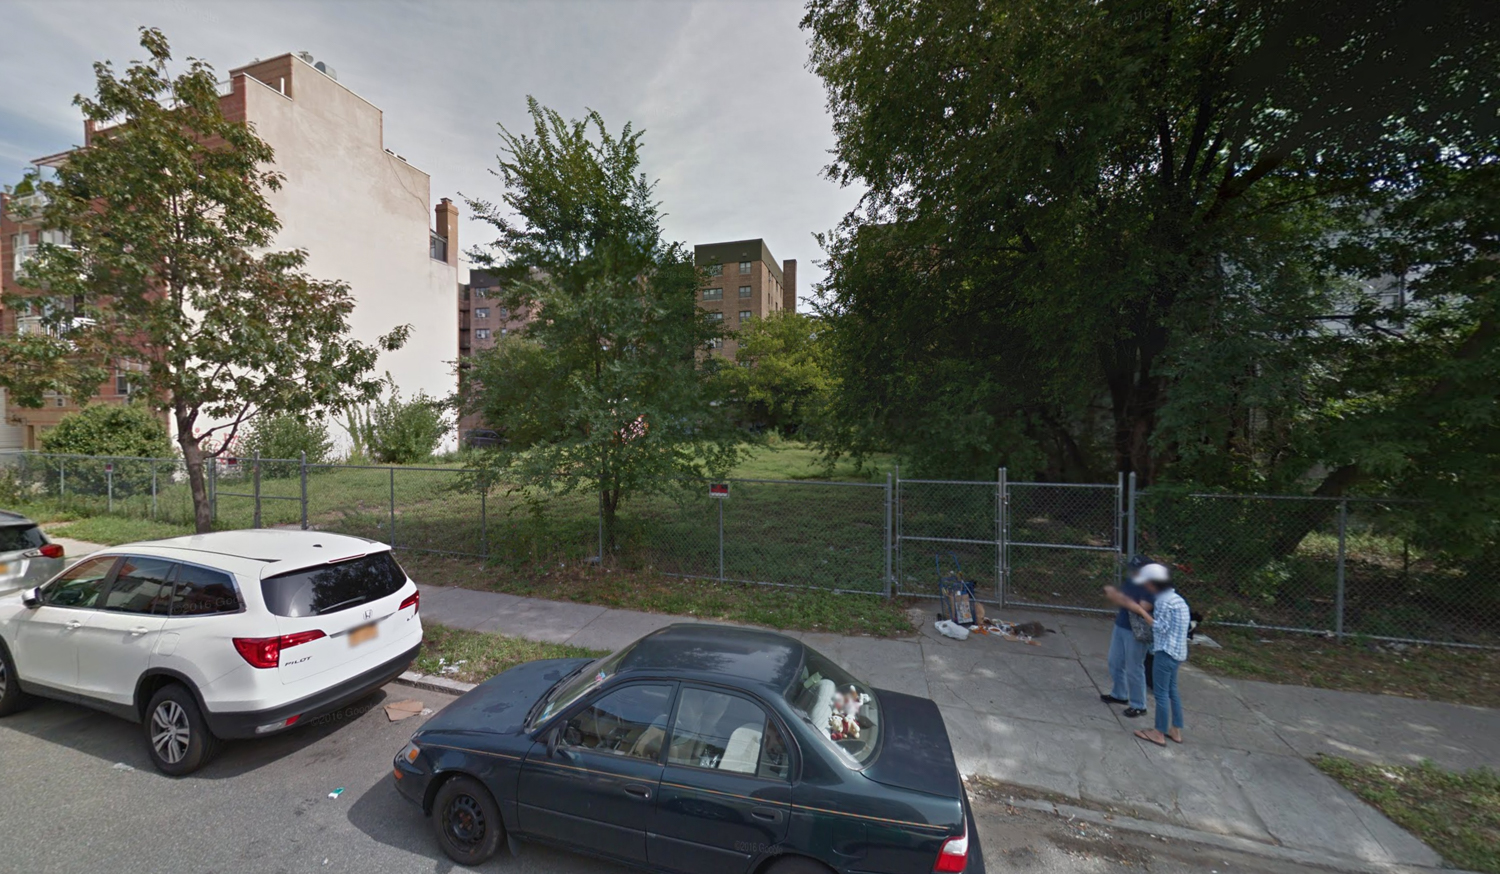 31-35 137th Street, via Google Maps